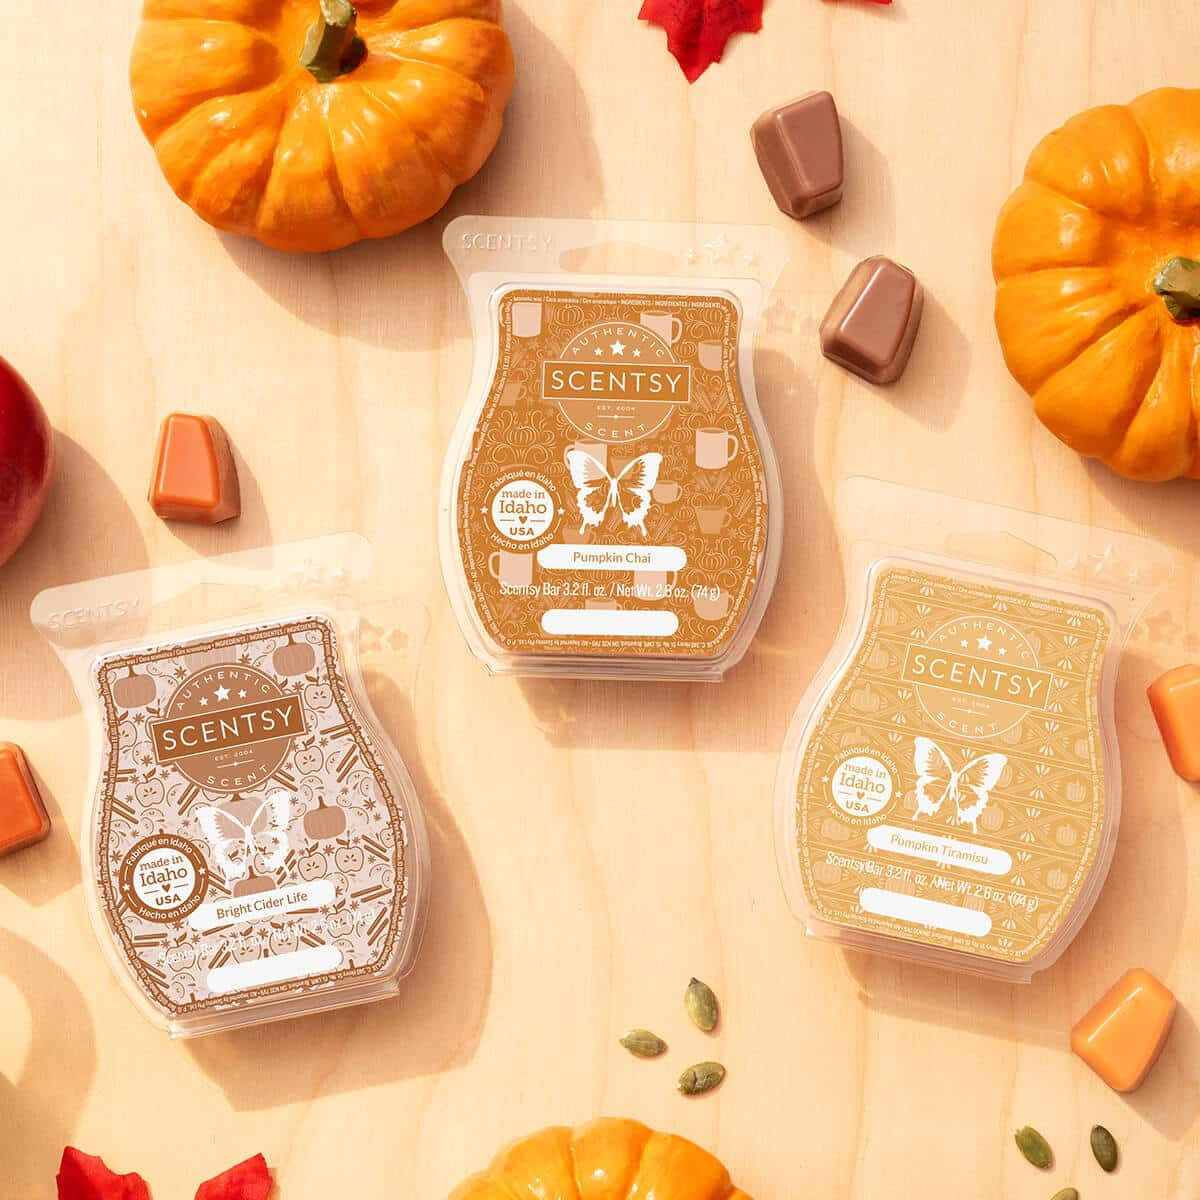 Gourdgeous Pumpkin Scentsy Harvest 2020 Wax Collection Incandescent Scentsy Us